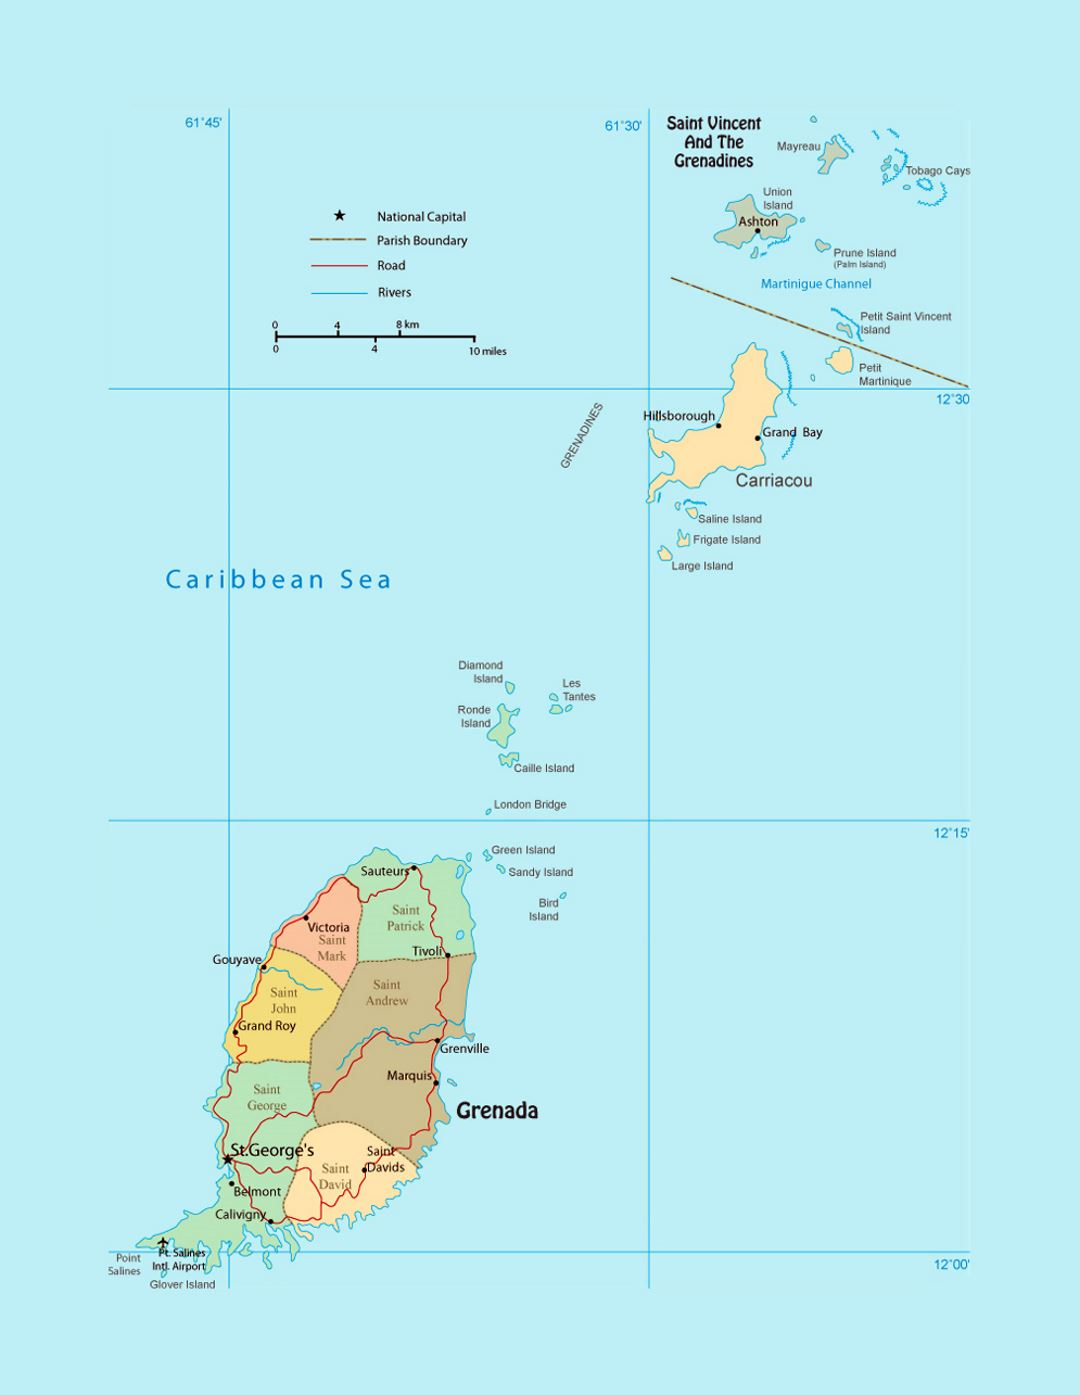 Detailed political and administrative map of Grenada with roads